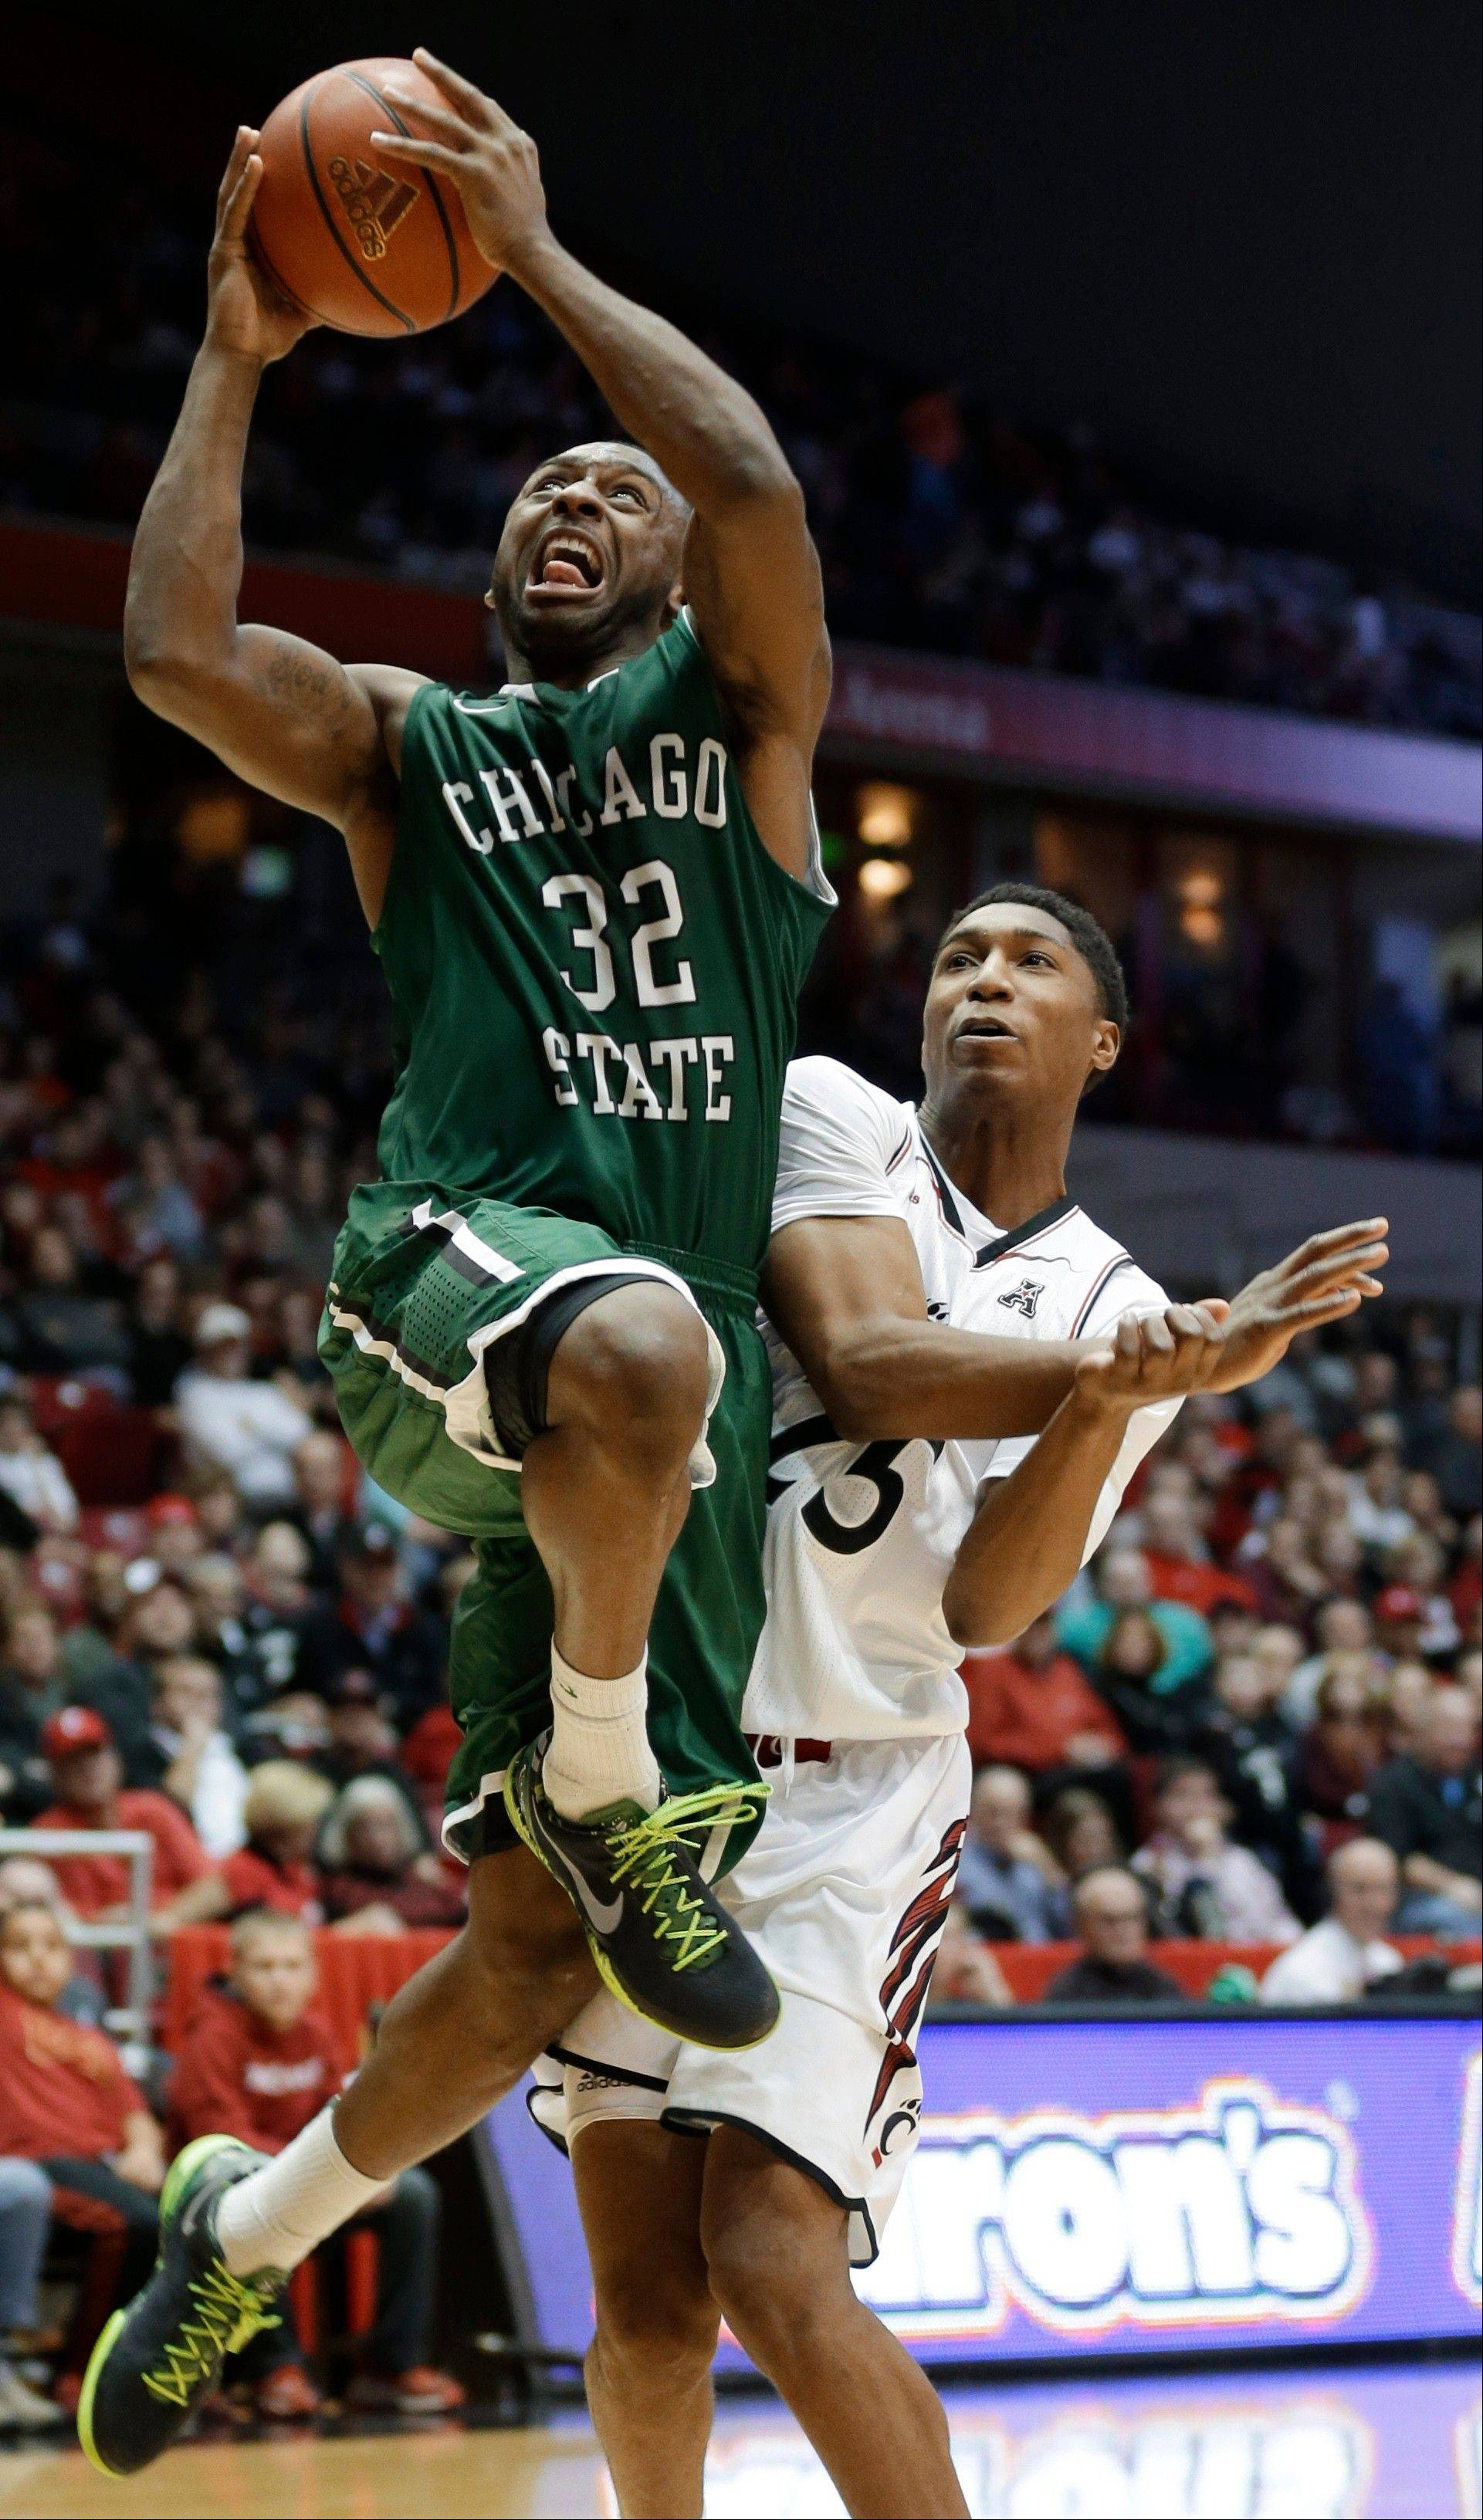 Chicago State guard Nate Duhon drives against Cincinnati guard Kevin Johnson during the second half of Monday�s game in Cincinnati.